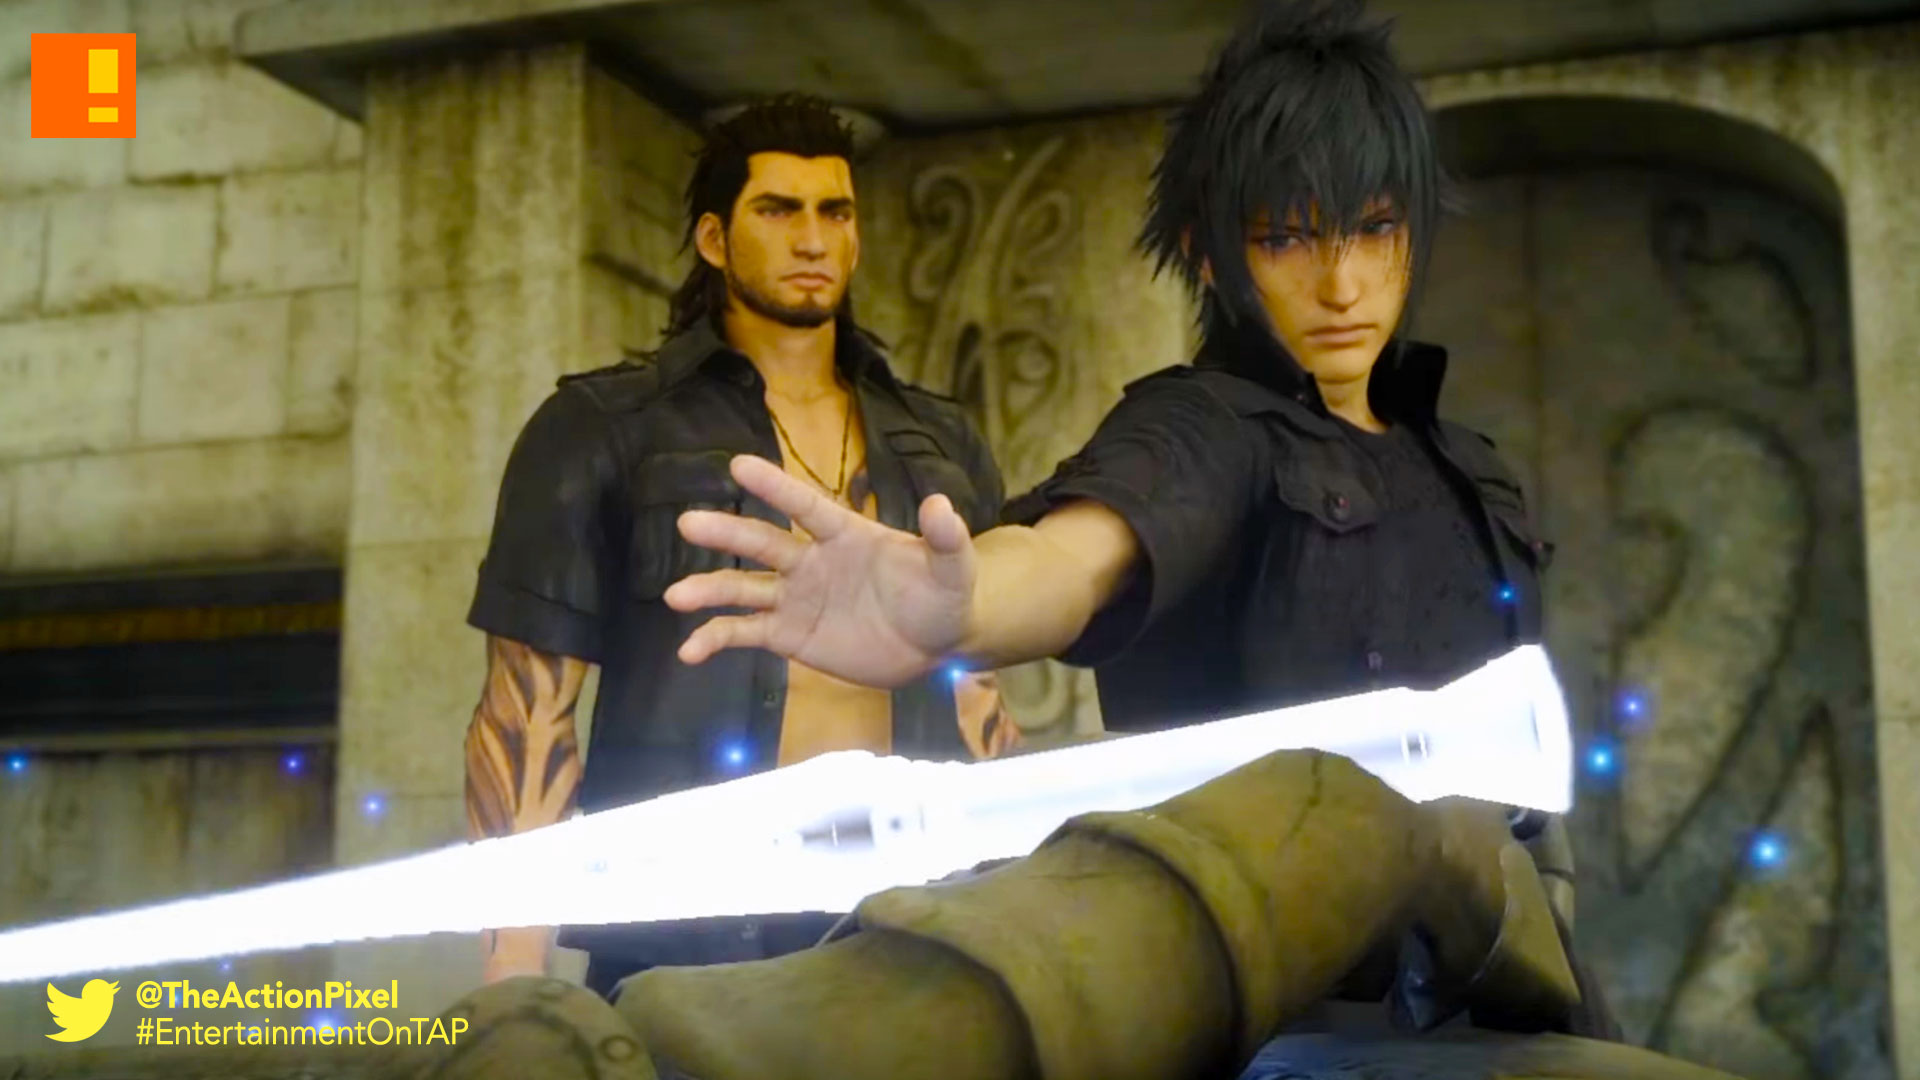 final fantasy xv, the action pixel, entertainment on tap,square enix